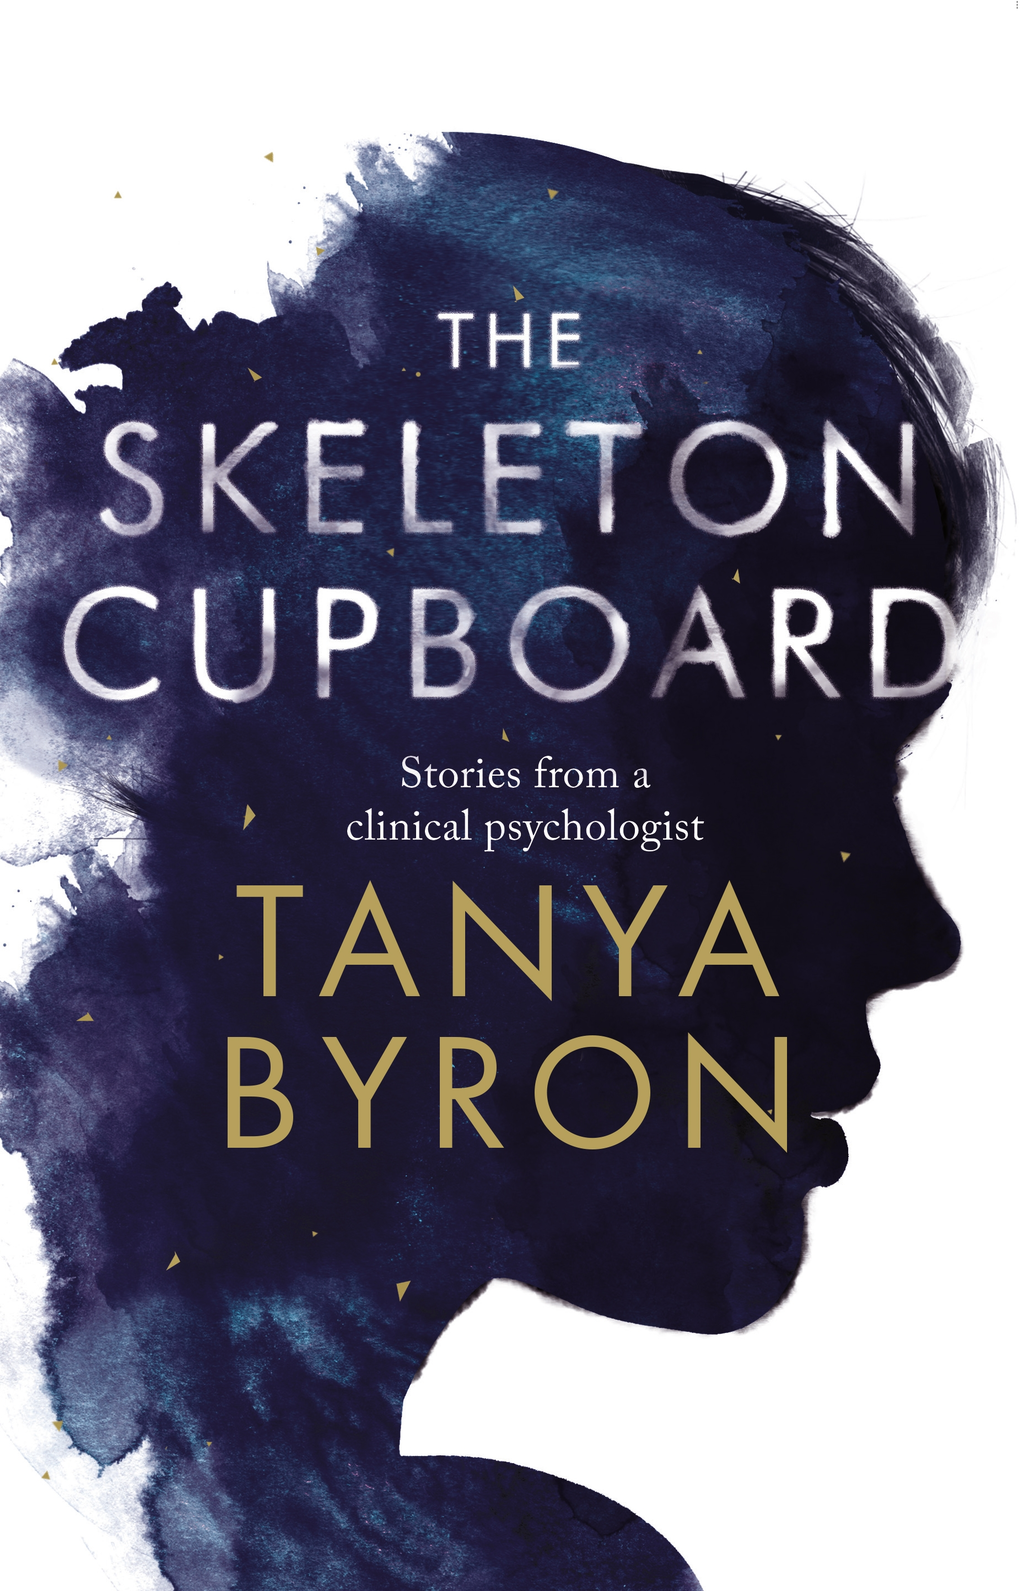 The Skeleton Cupboard The making of a clinical psychologist